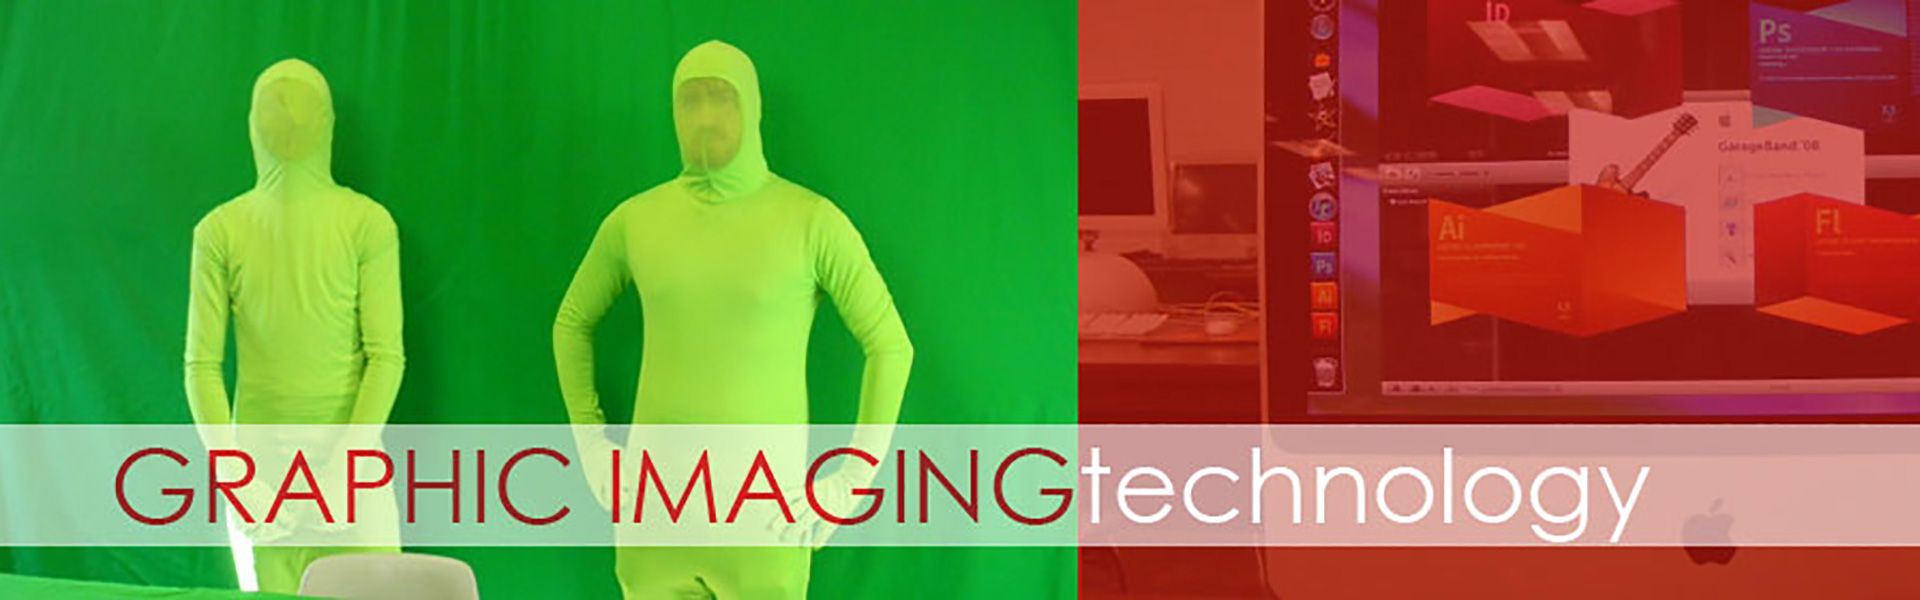 Graphic Imaging Technology